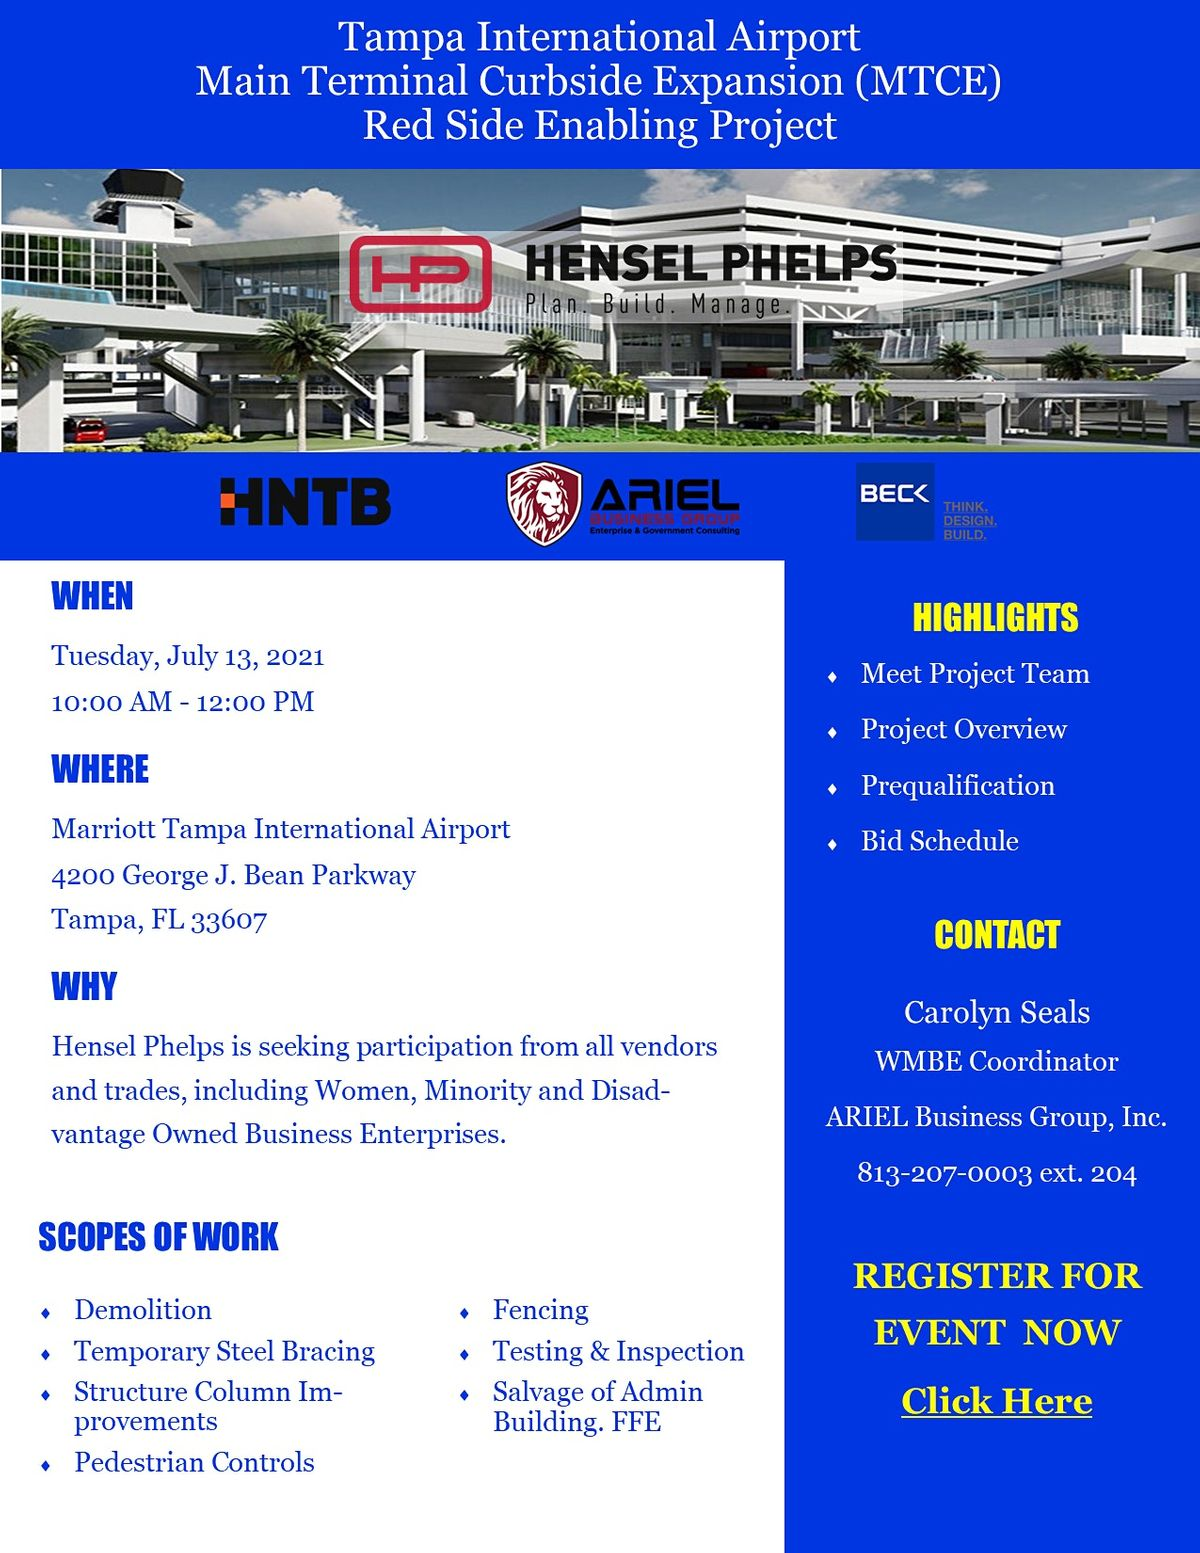 Hensel Phelps - TPA Red Side Project Information Outreach Event (In Person)